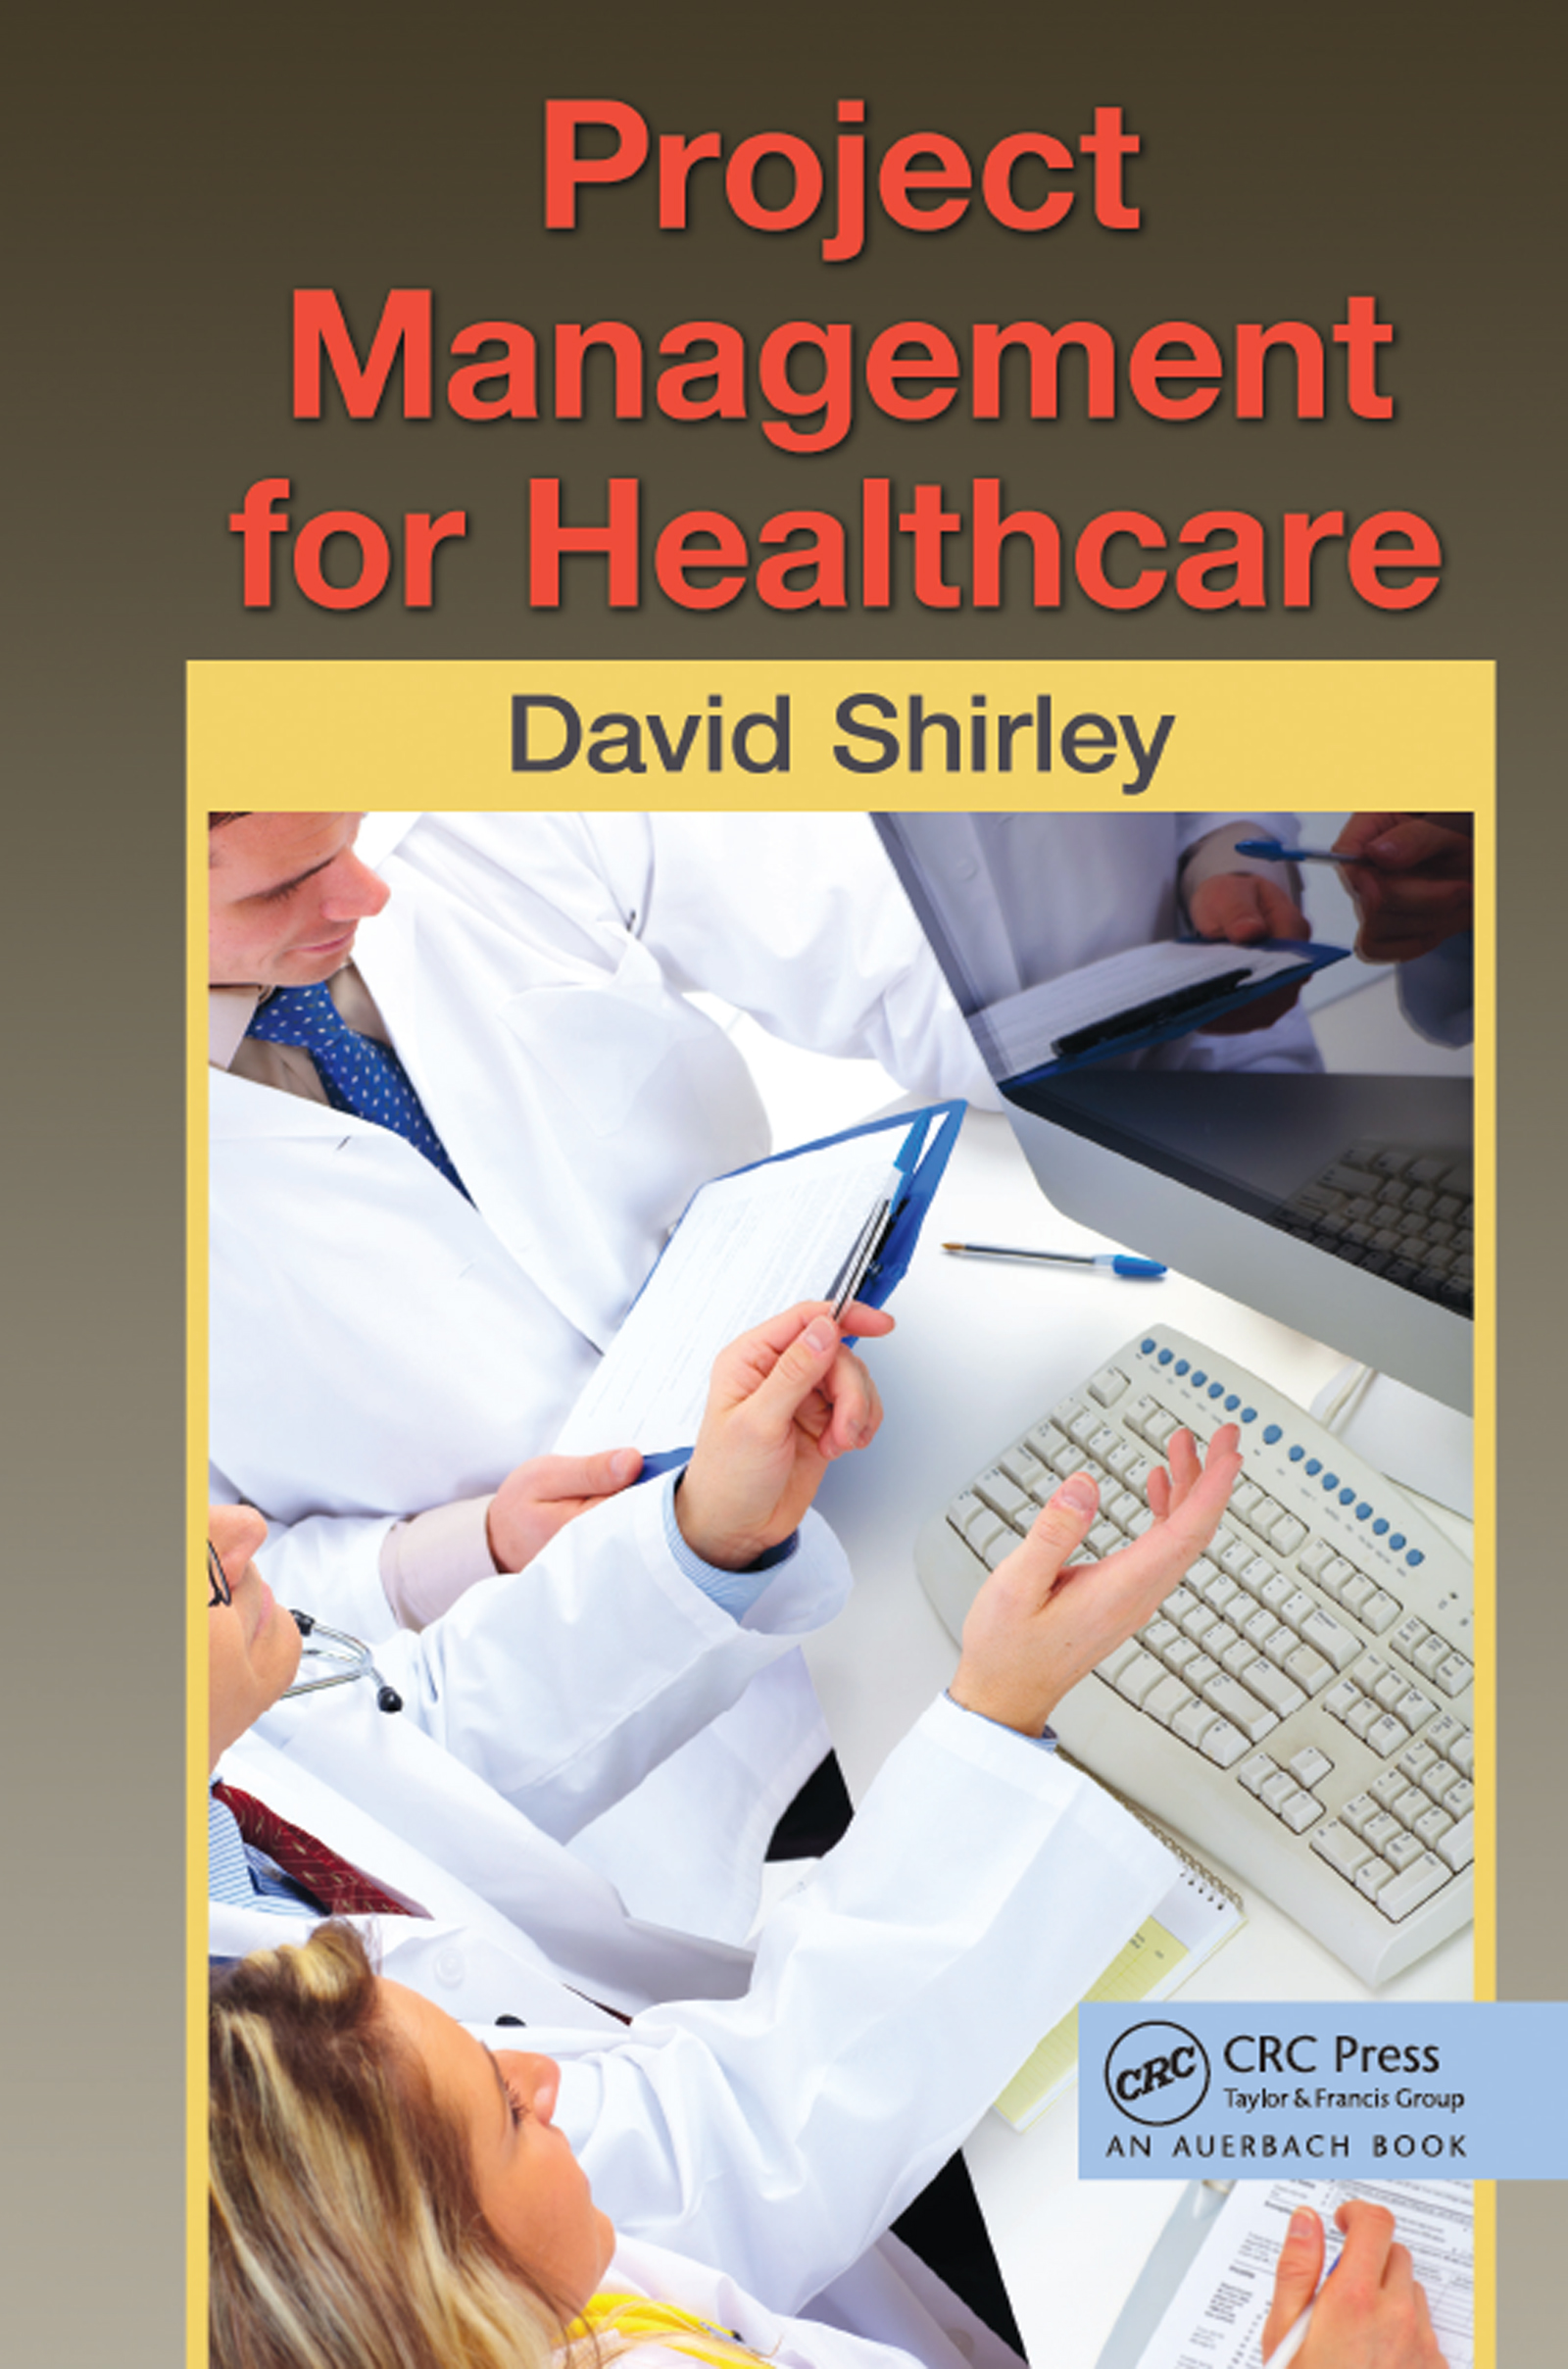 Download Ebook Project Management for Healthcare by David Shirley Pdf